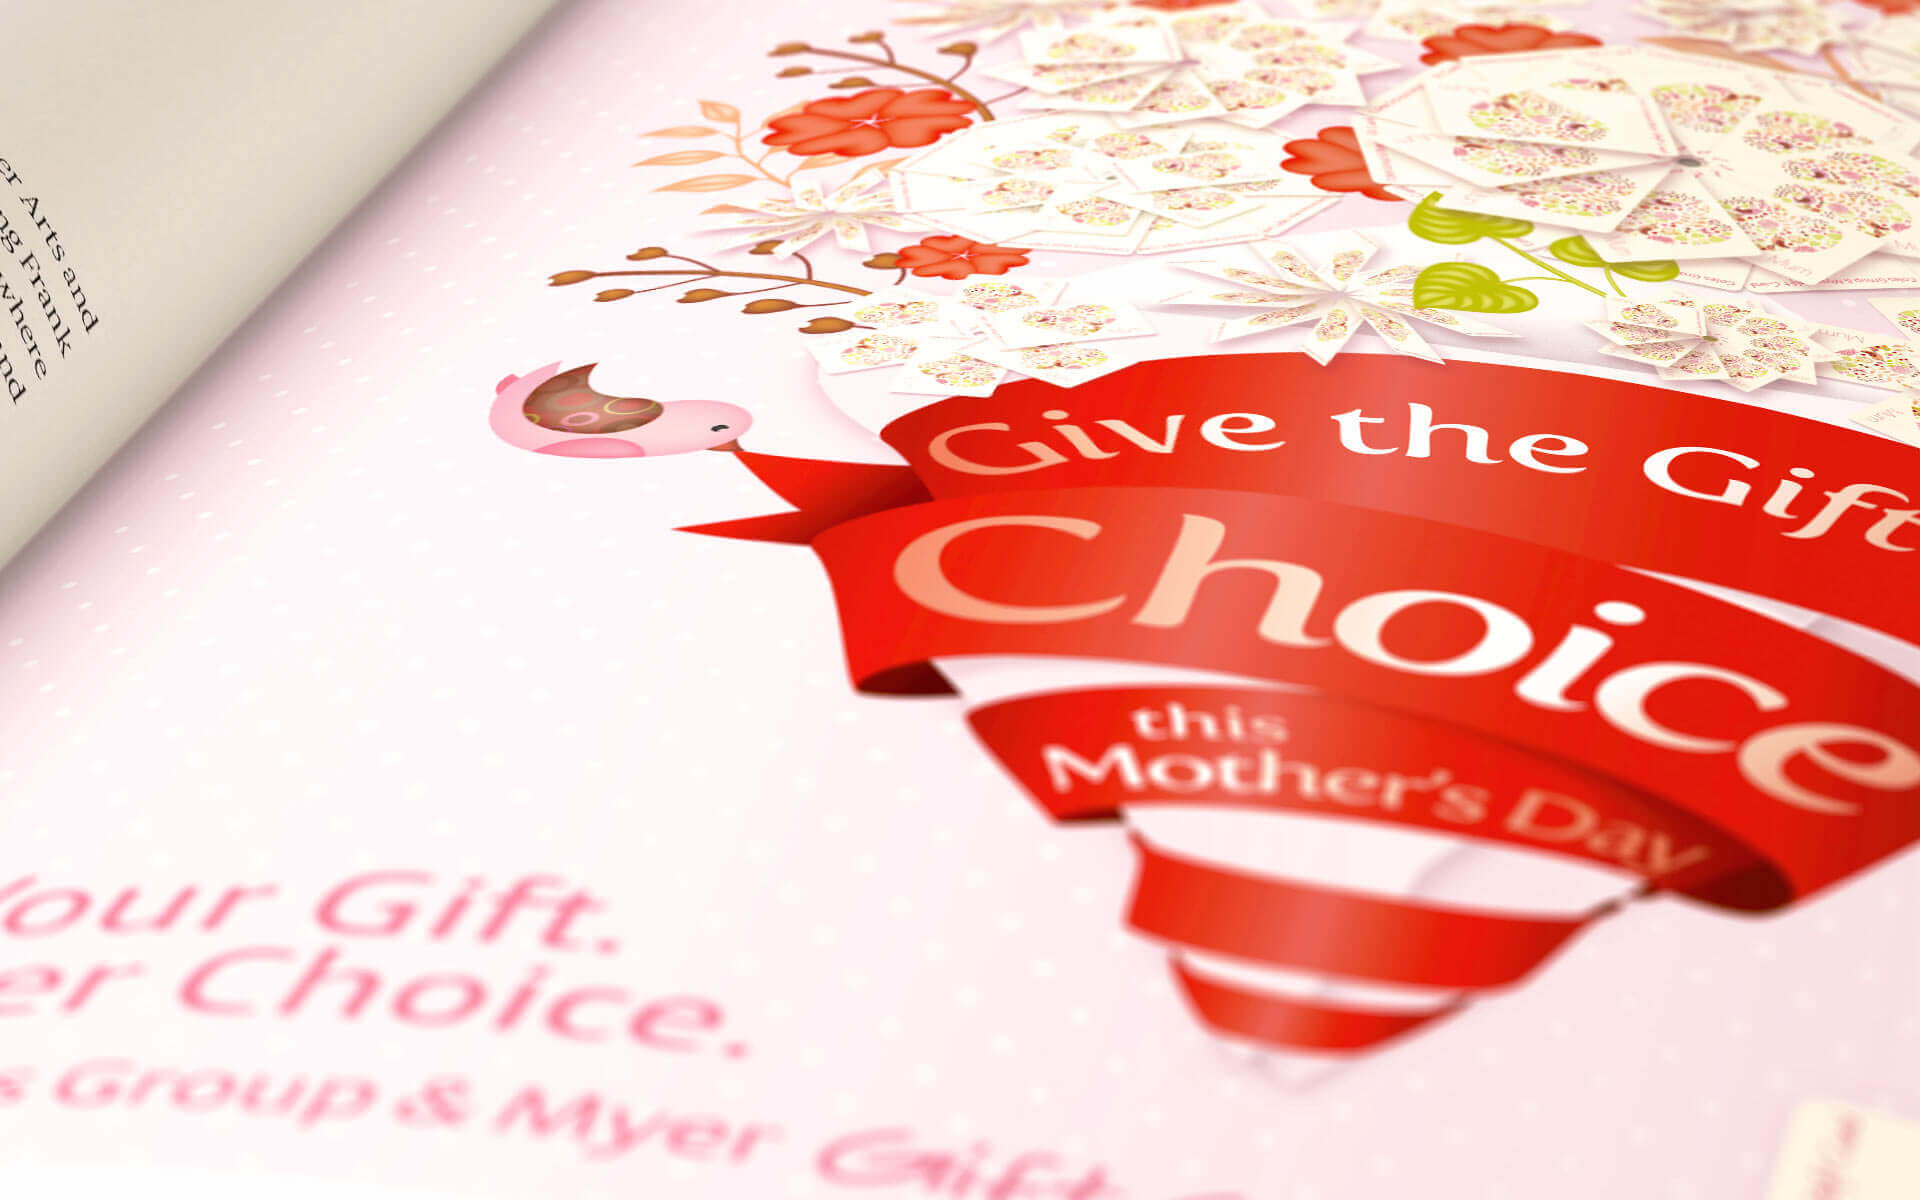 'Give the Gift of Choice' Coles Mothers Day Gift Card close up detail of print ad.